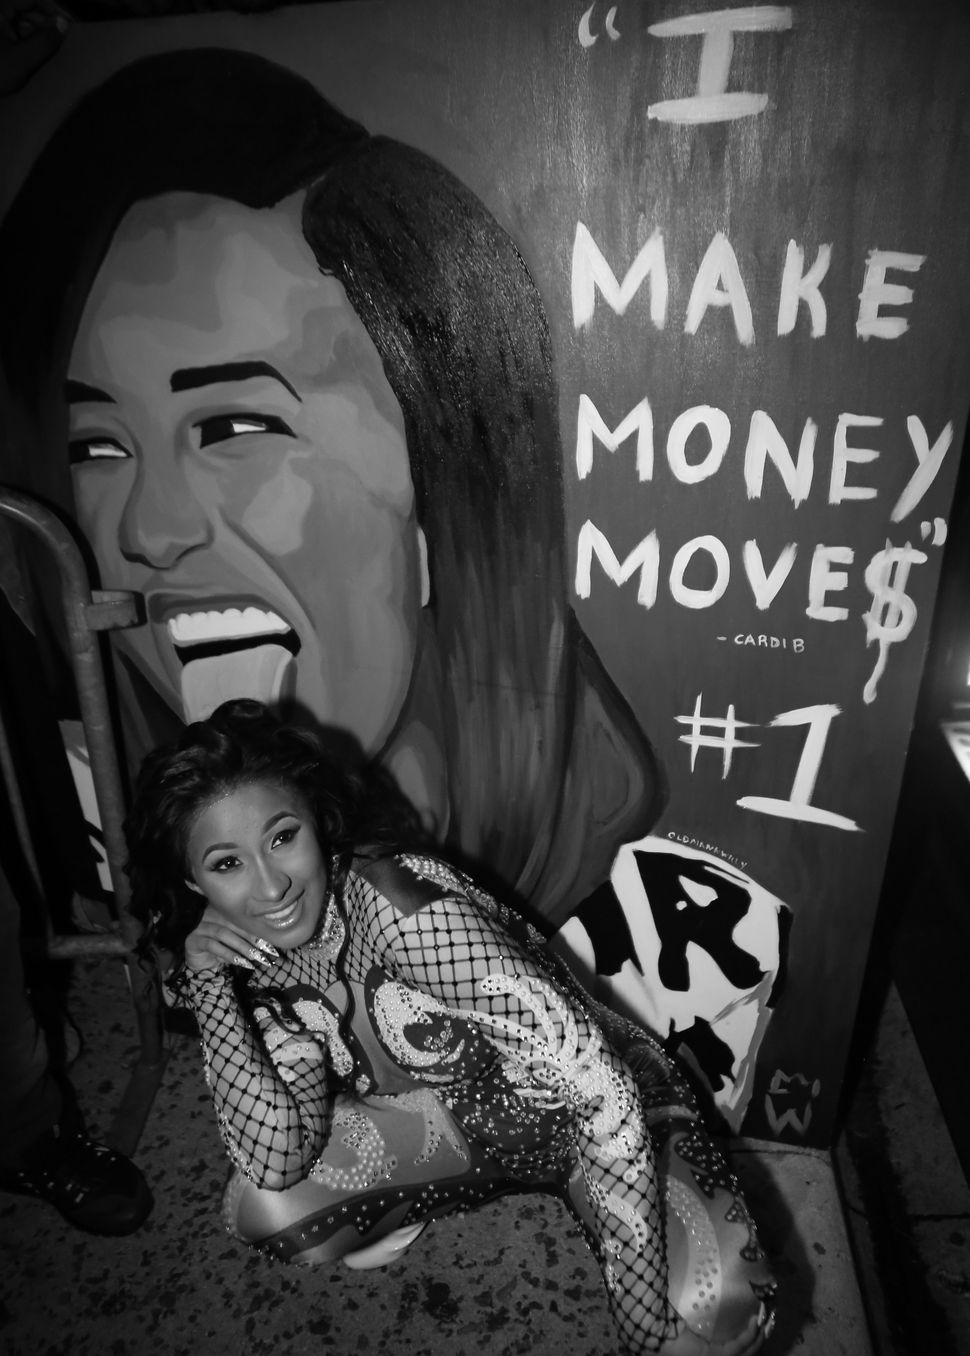 Cardi B poses with a fan made painting while leaving Revolution Live on Sept. 25, 2017 in Fort Lauderdale, Florida.&nbsp